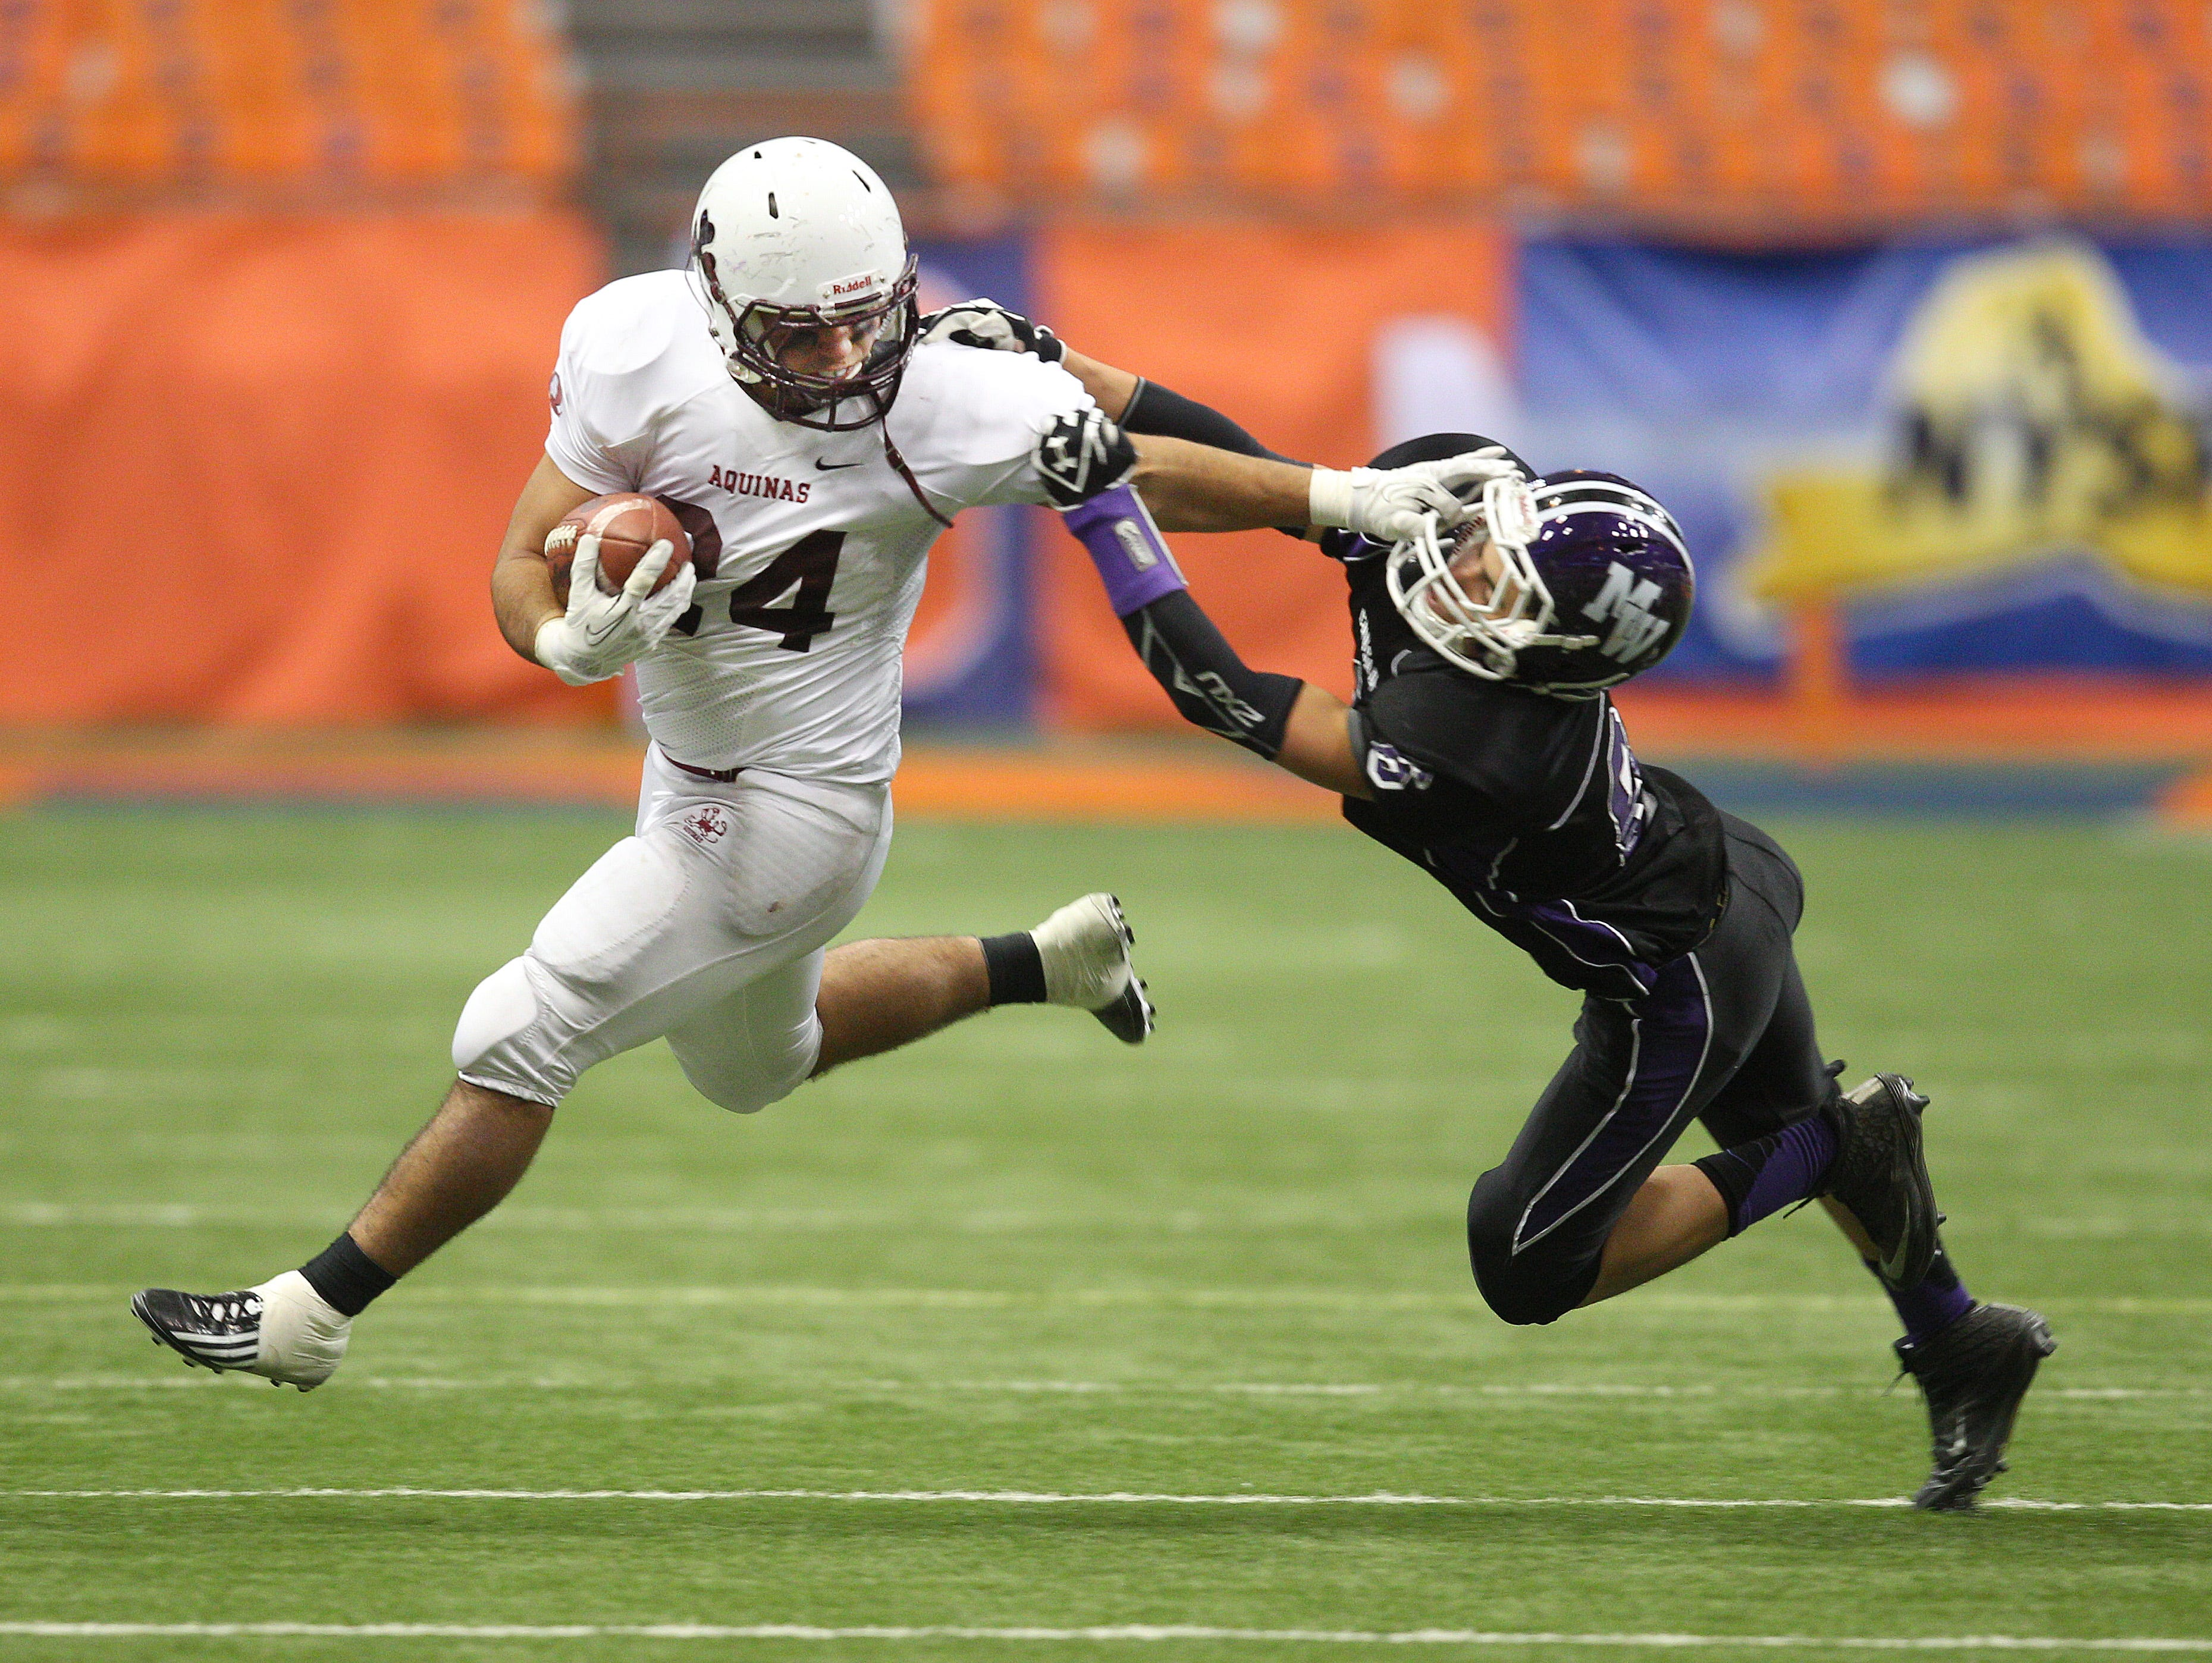 Running back Luch Pietropaolo - Class of 2014